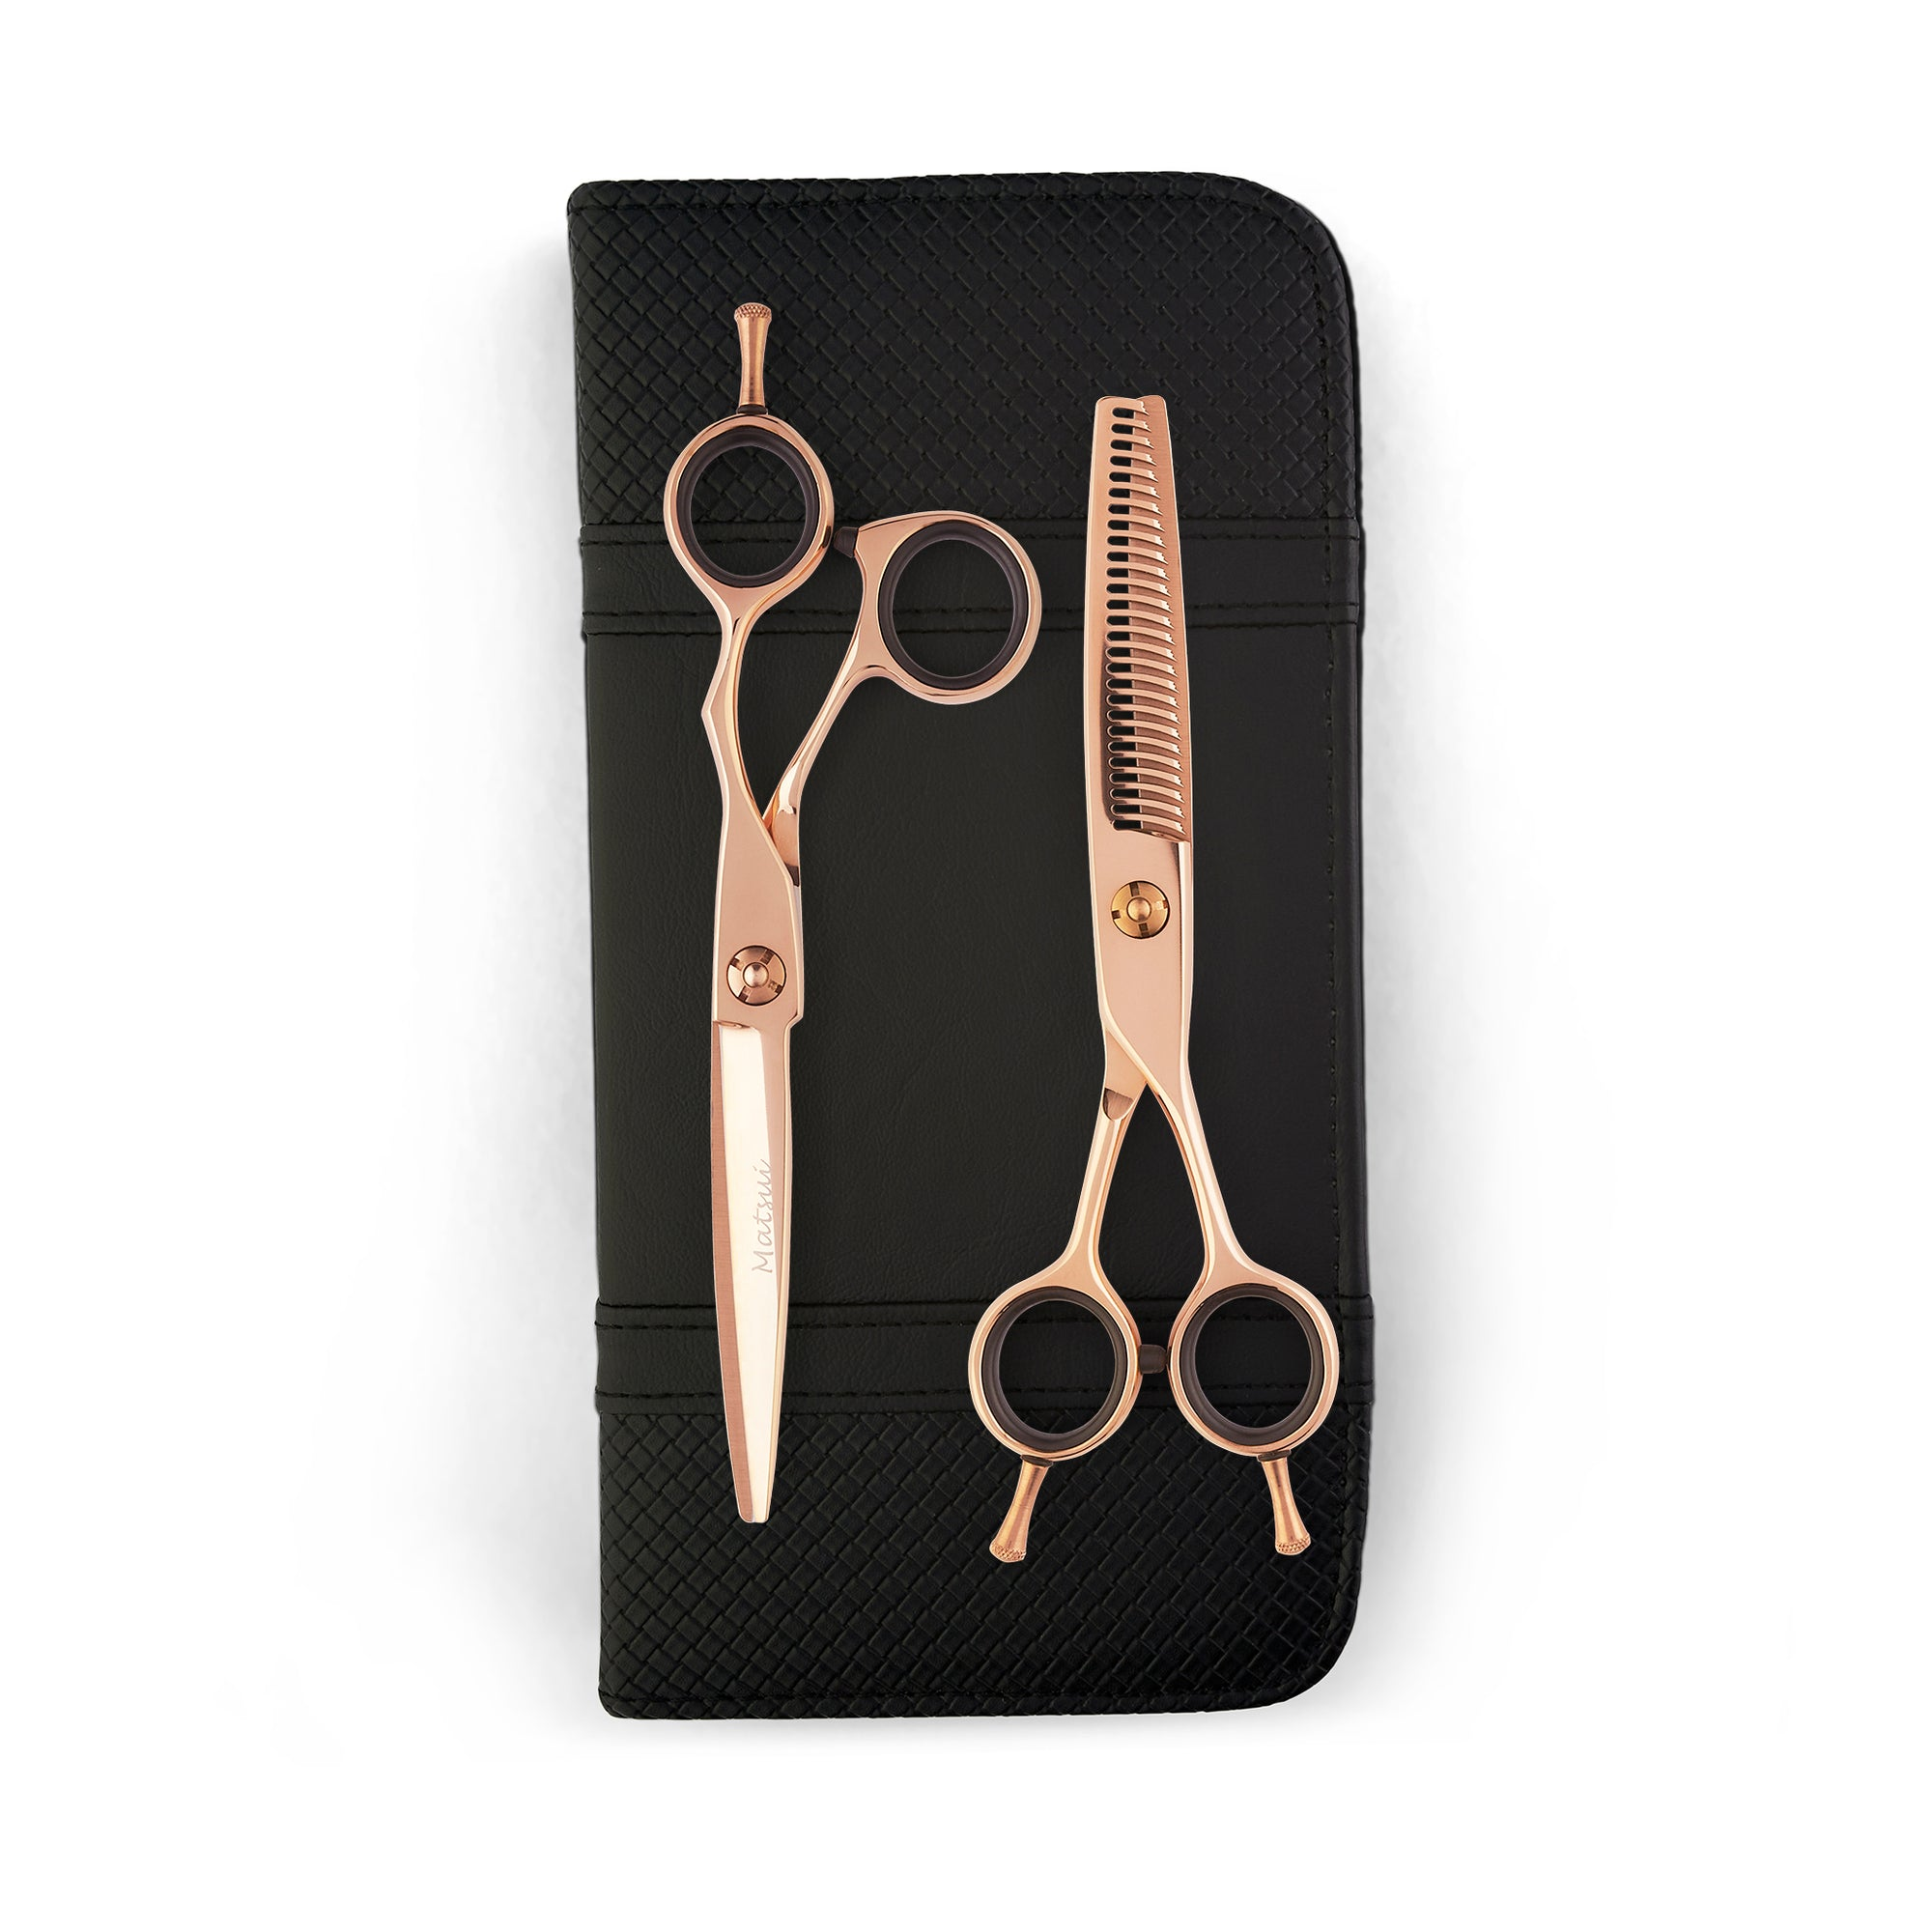 Matsui Offset Drop Handle Scissor Thinner Combo - Rose Gold (4540271231037)